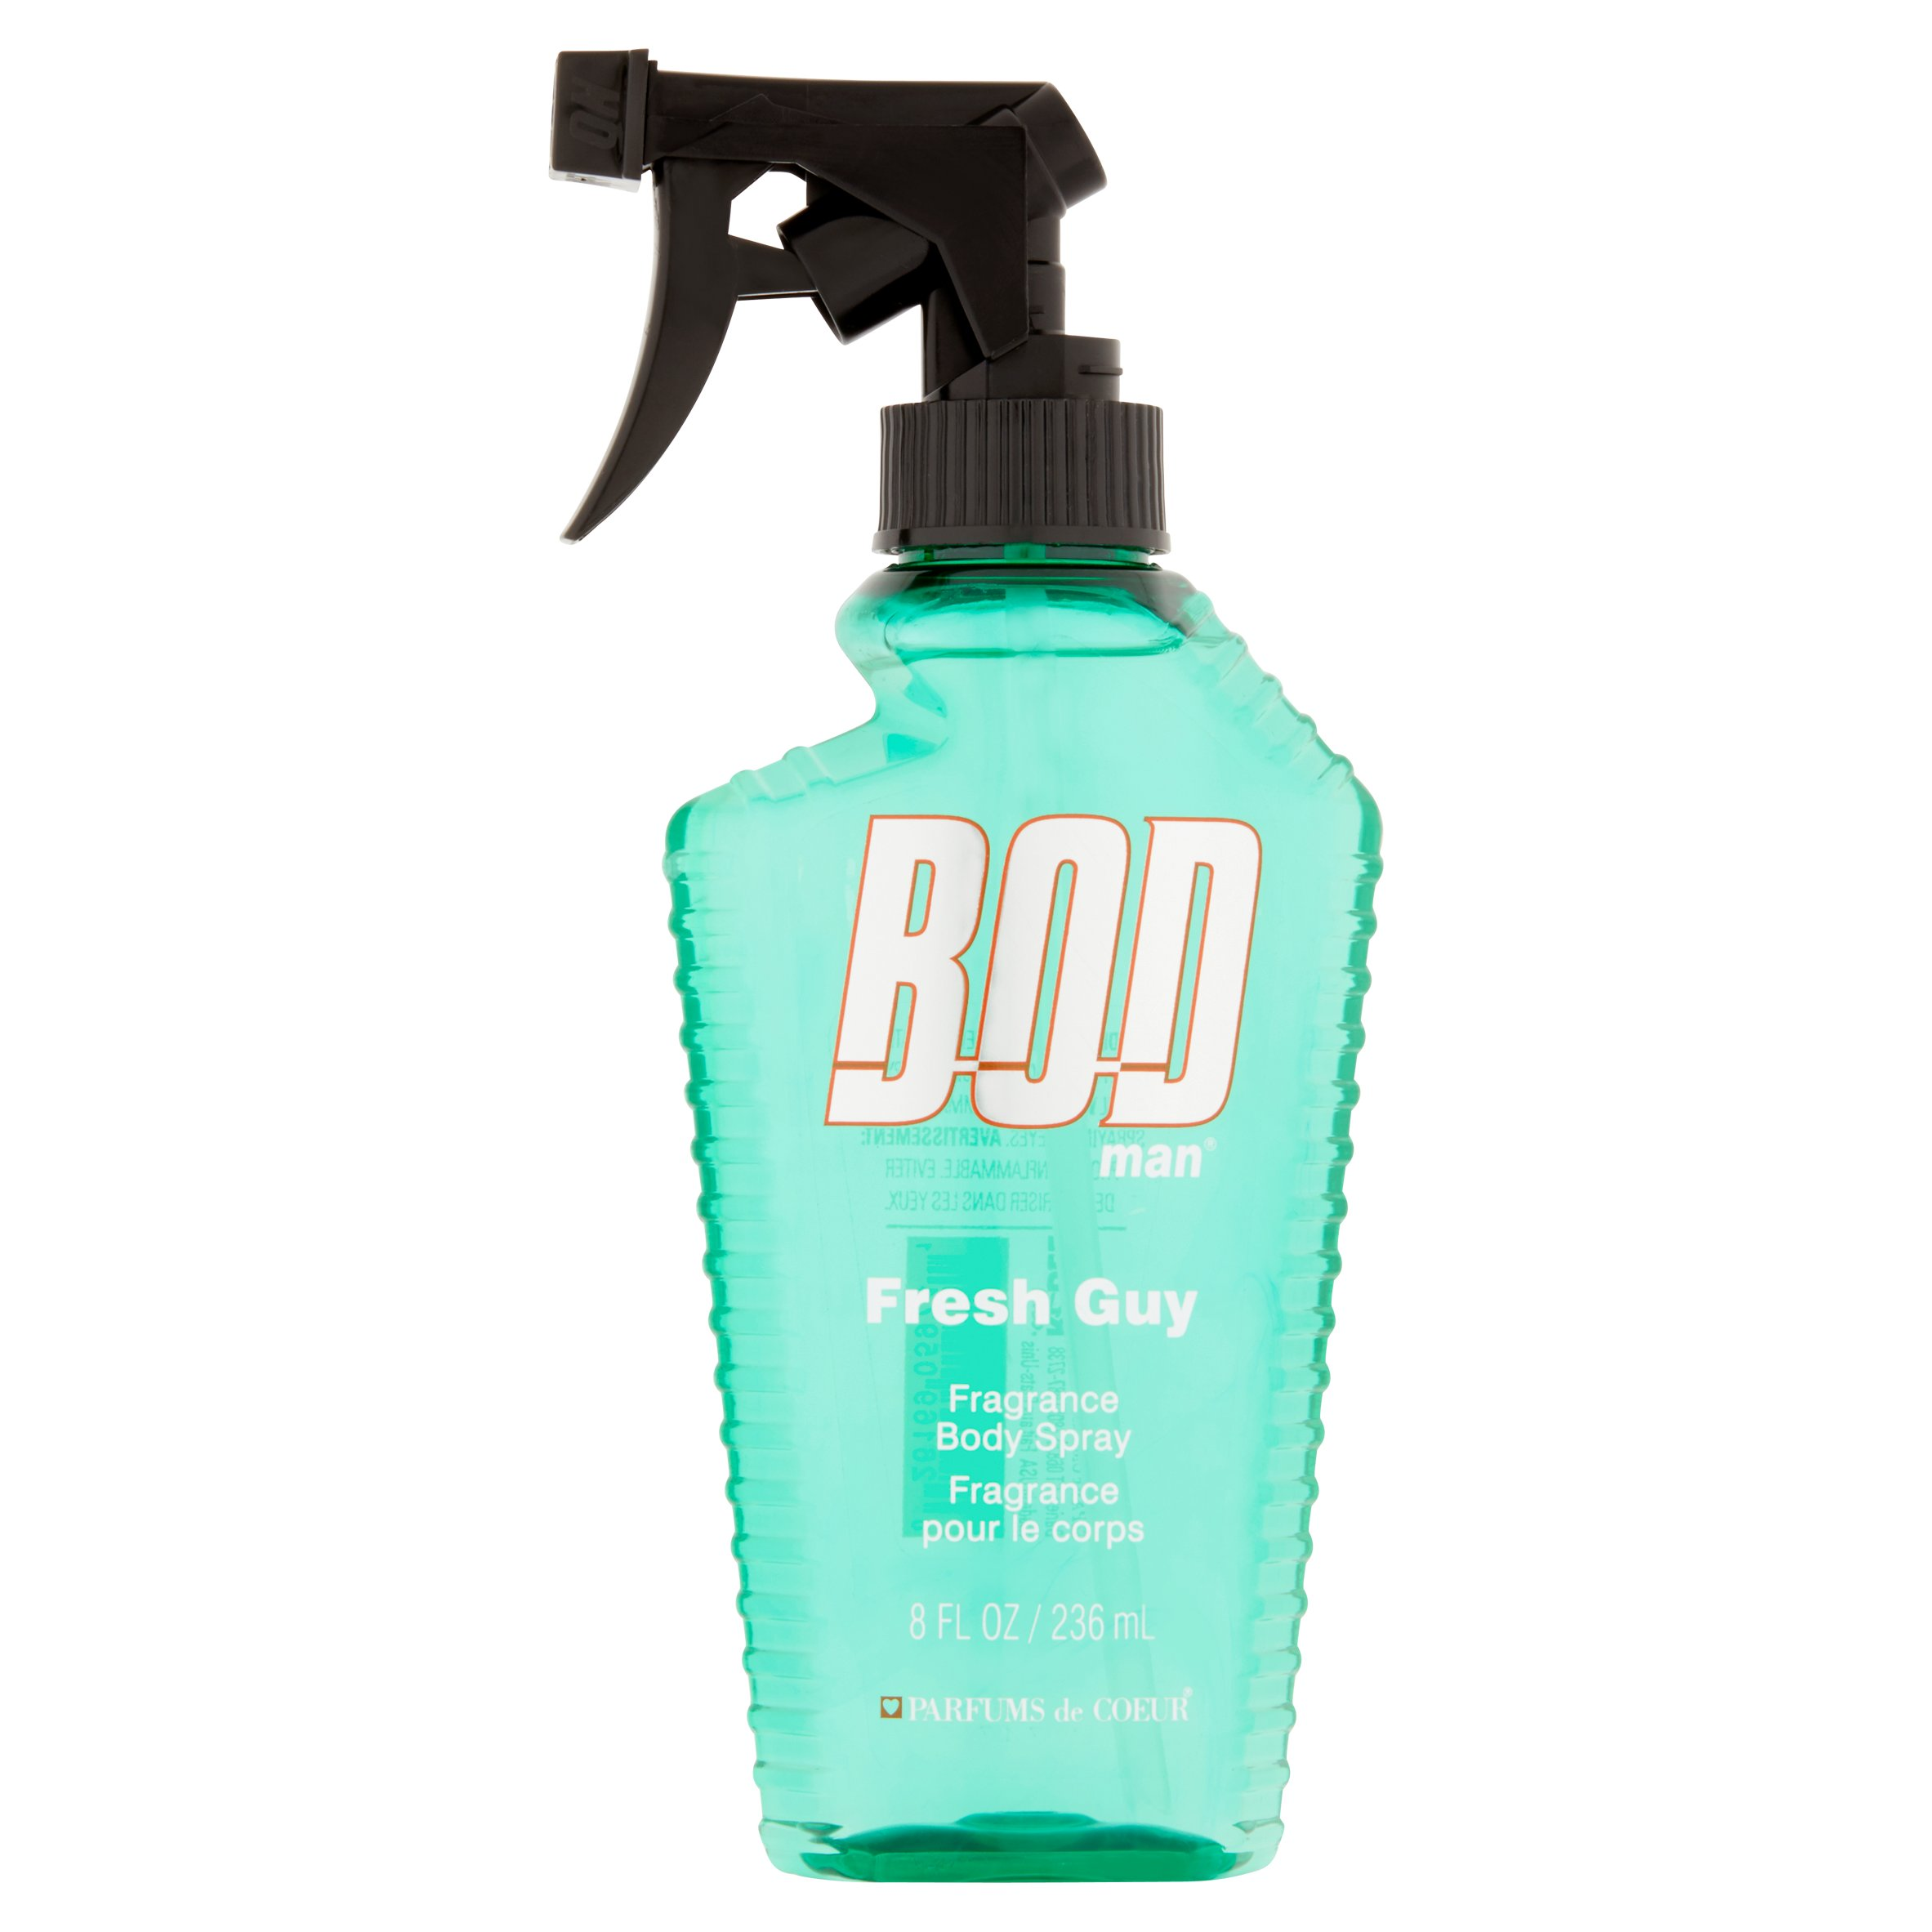 Bod Man Fresh Guy Body Spray, 8oz